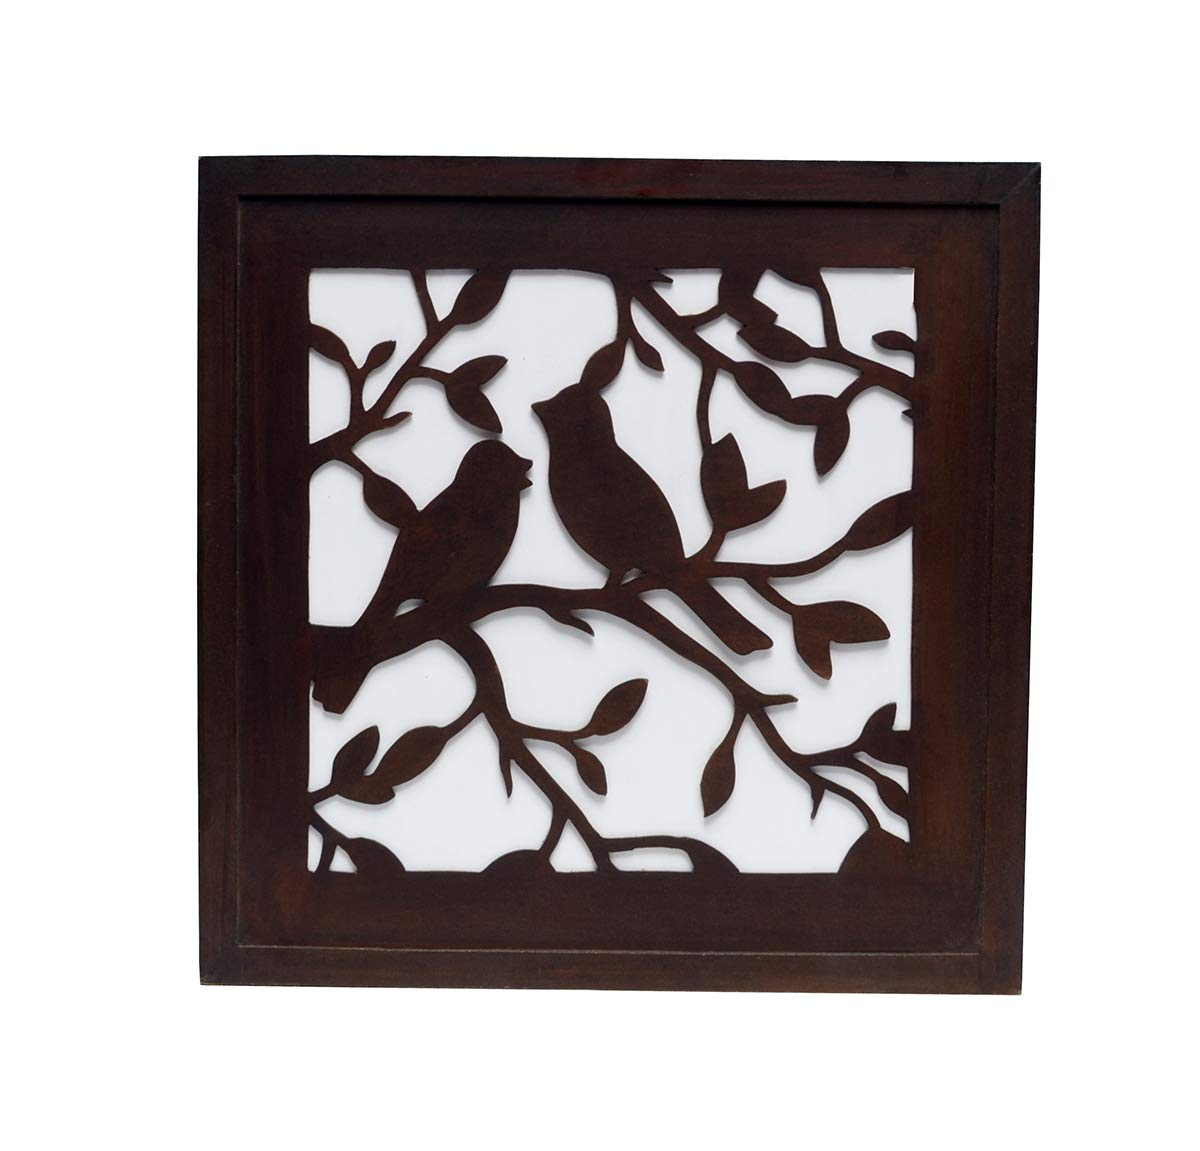 Kimji Wooden Decorative Wooden Wall Panel Hanging (Brown)